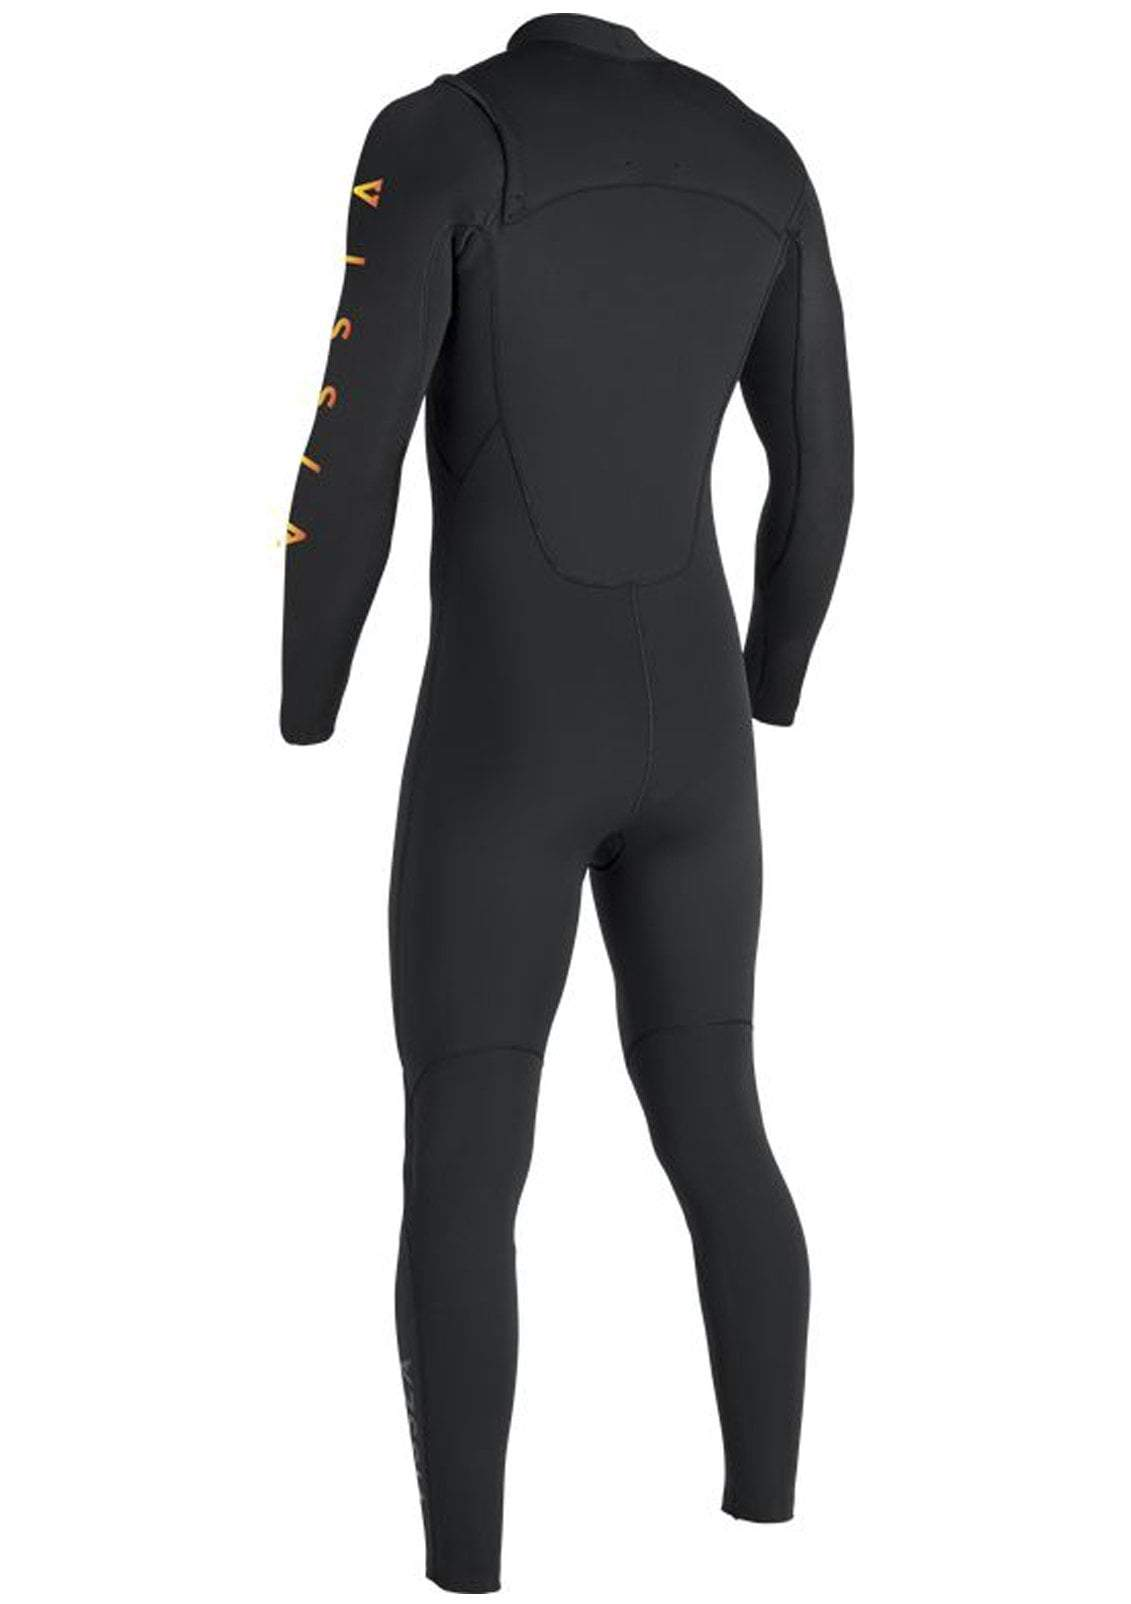 a3711169fcb Largest Wetsuit Retailer at Jackssurfboards.com – Tagged